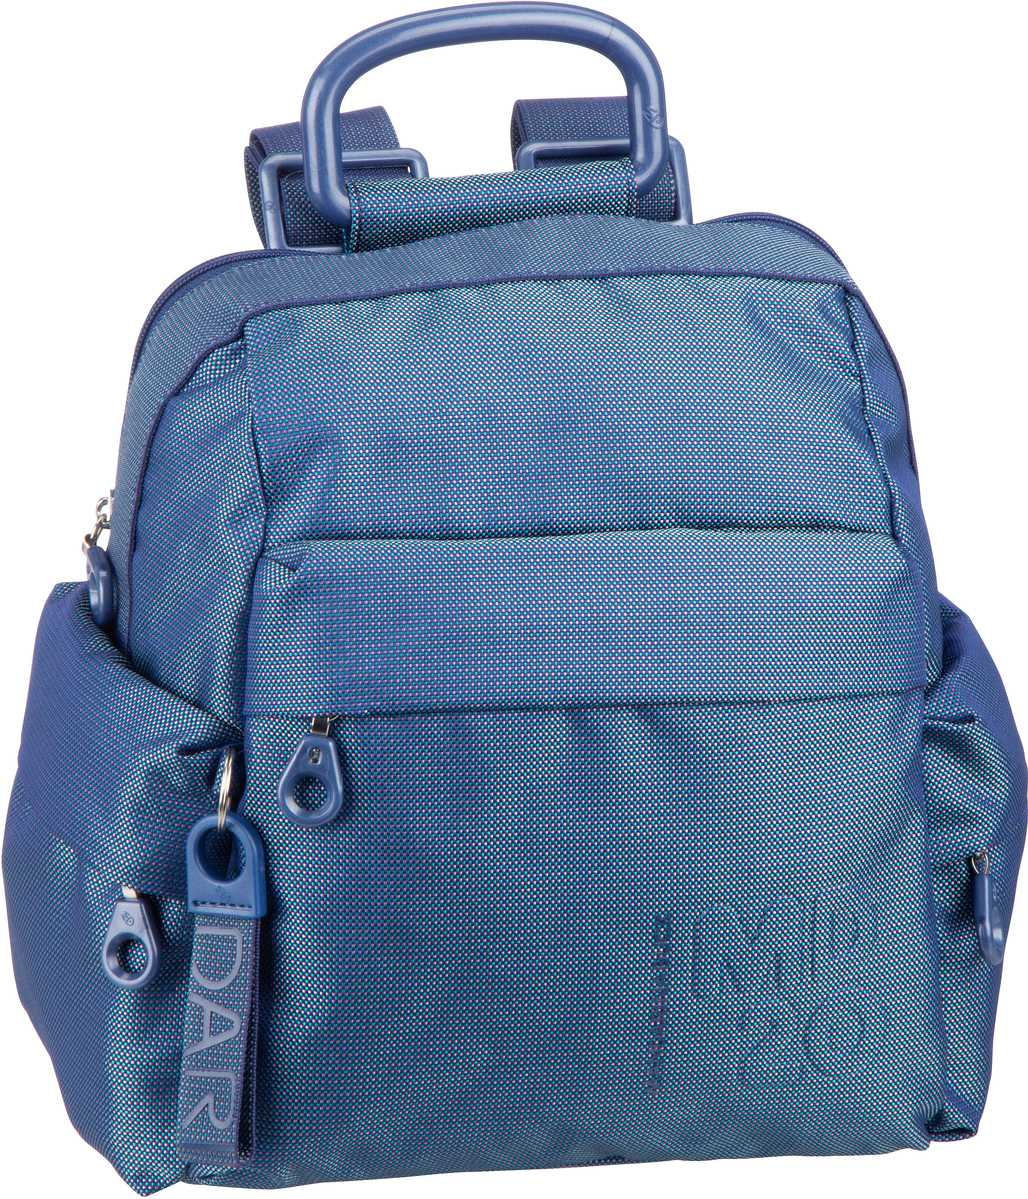 Rucksack / Daypack MD20 Small Backpack QMTT1 Classic Blue